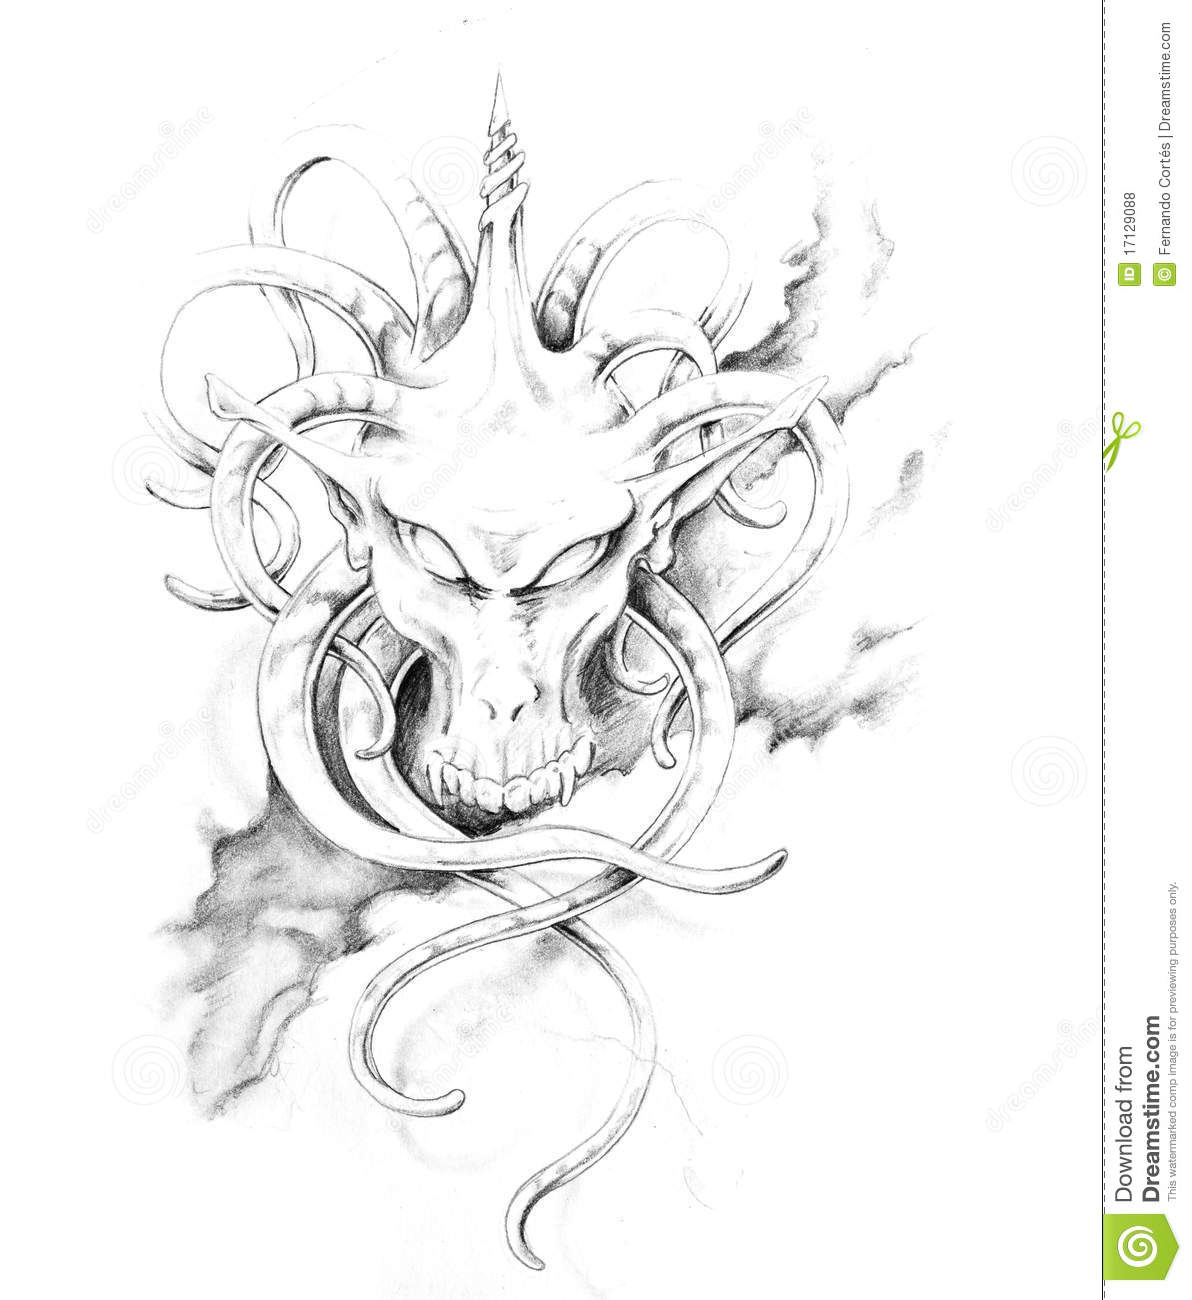 Sketch of tattoo art monster royalty free stock photos for Sketch online free